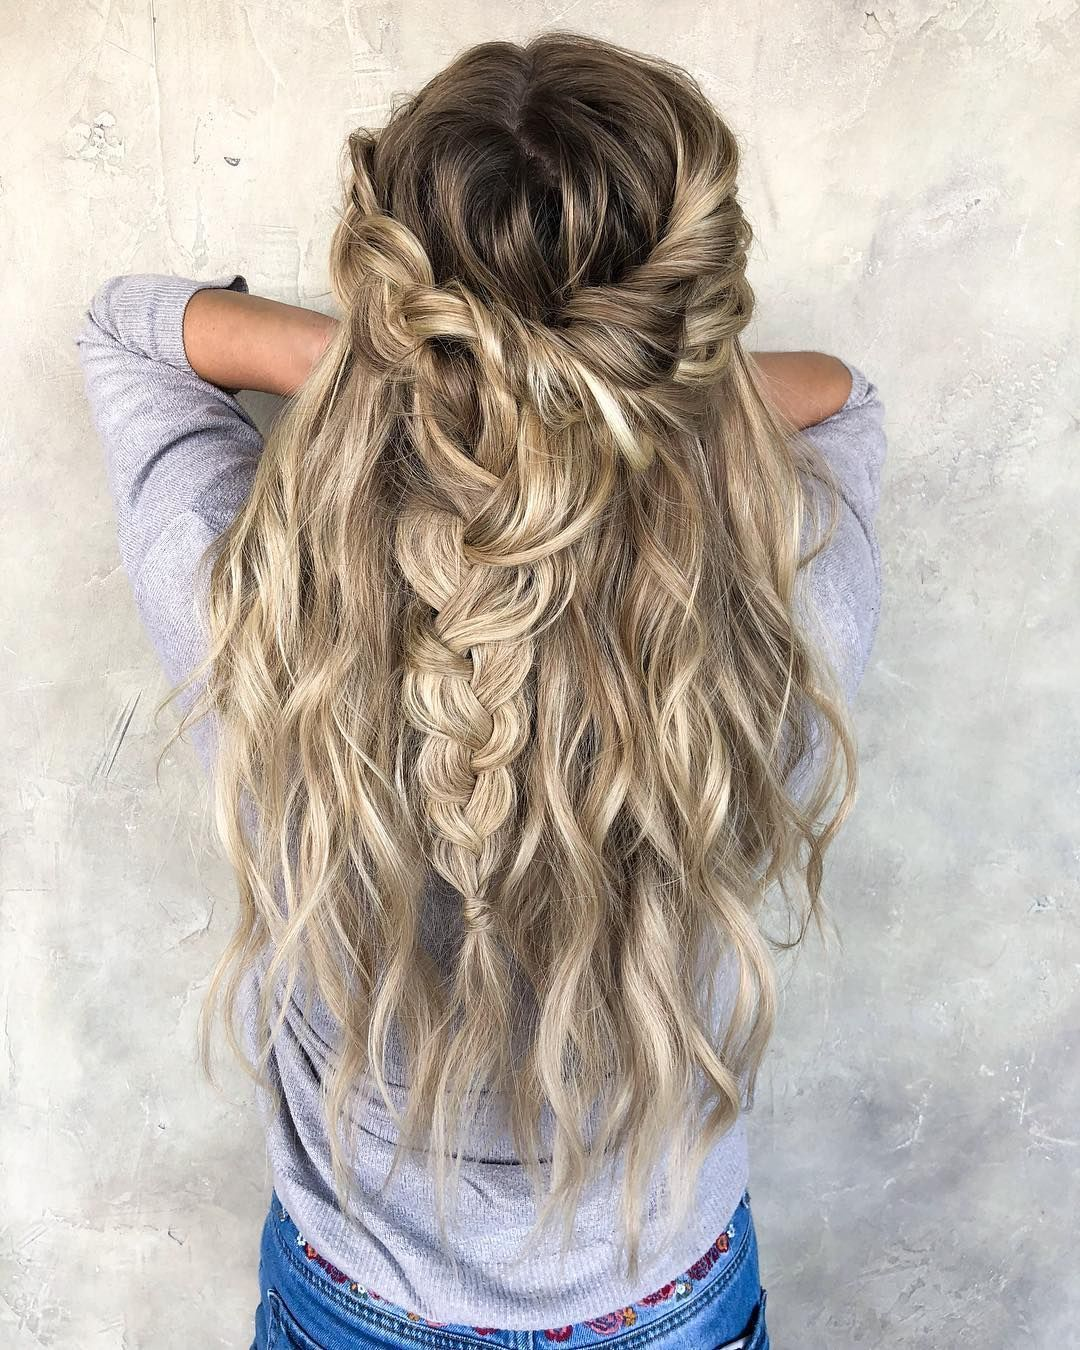 49 Boho Braid Hairstyles to Try – Blonde hair + braid half up half down hairstyle #braids #hairstyles #bohohairstyles